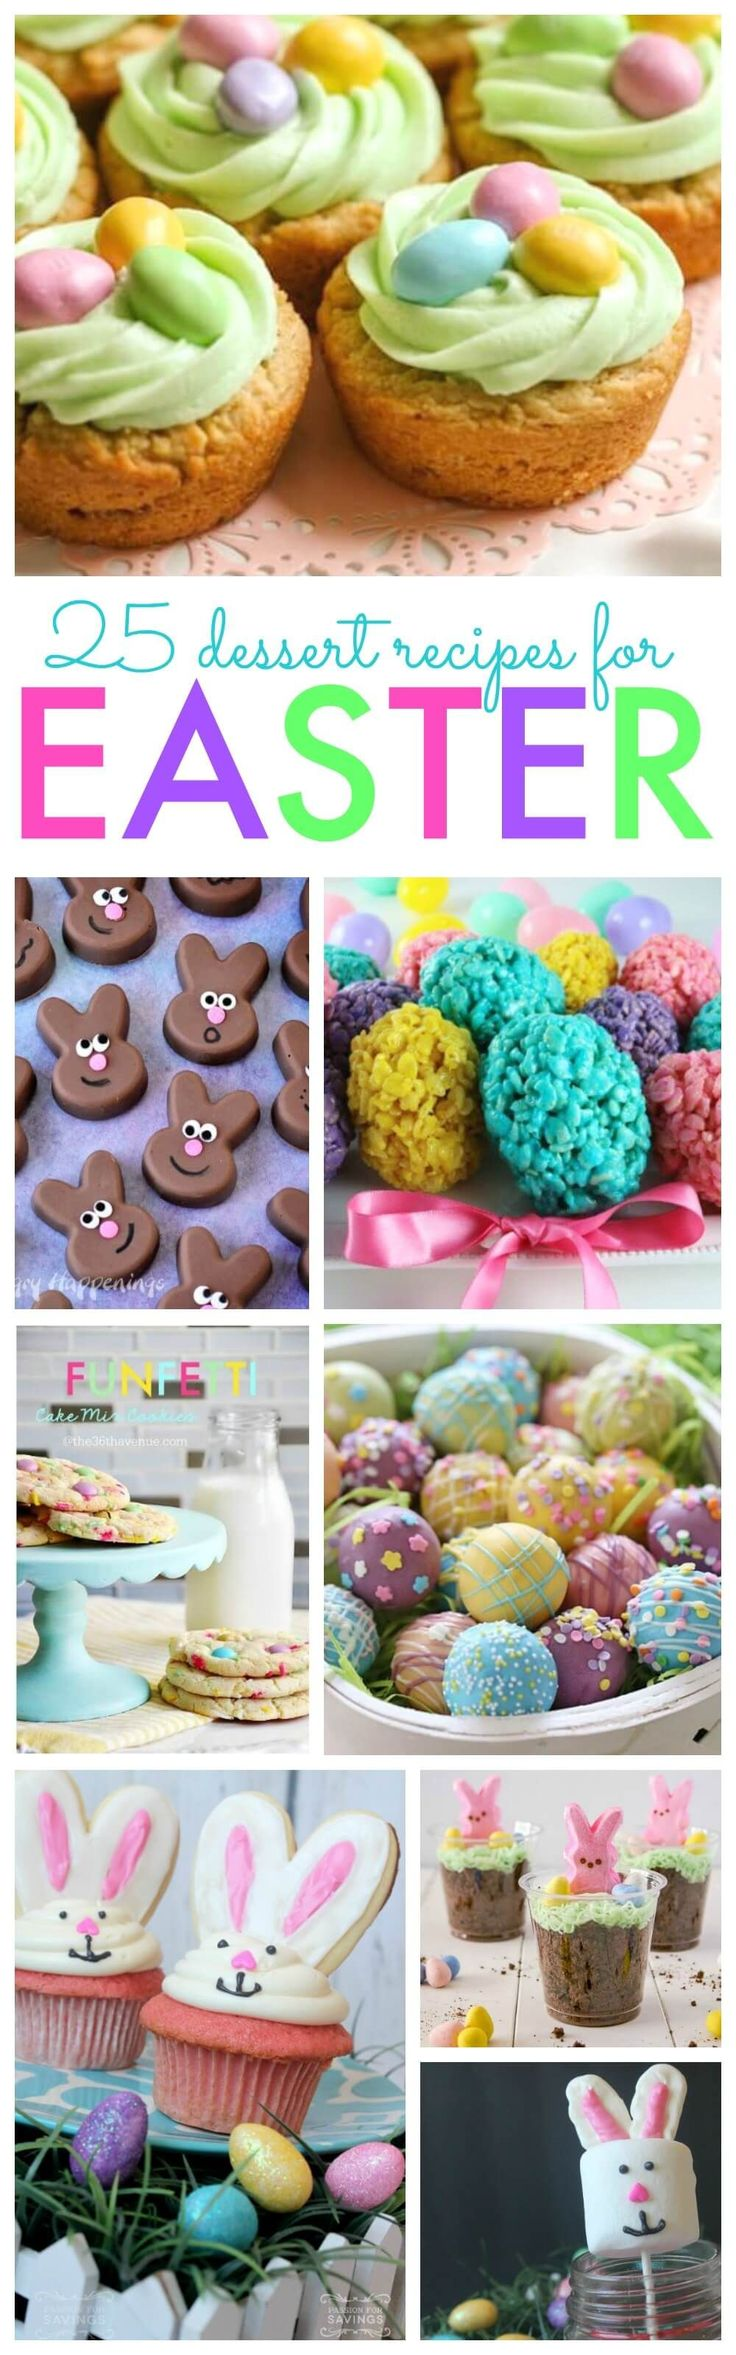 easter desserts #easter Desserts Easter Desserts Your Family Will Love   – Desserts